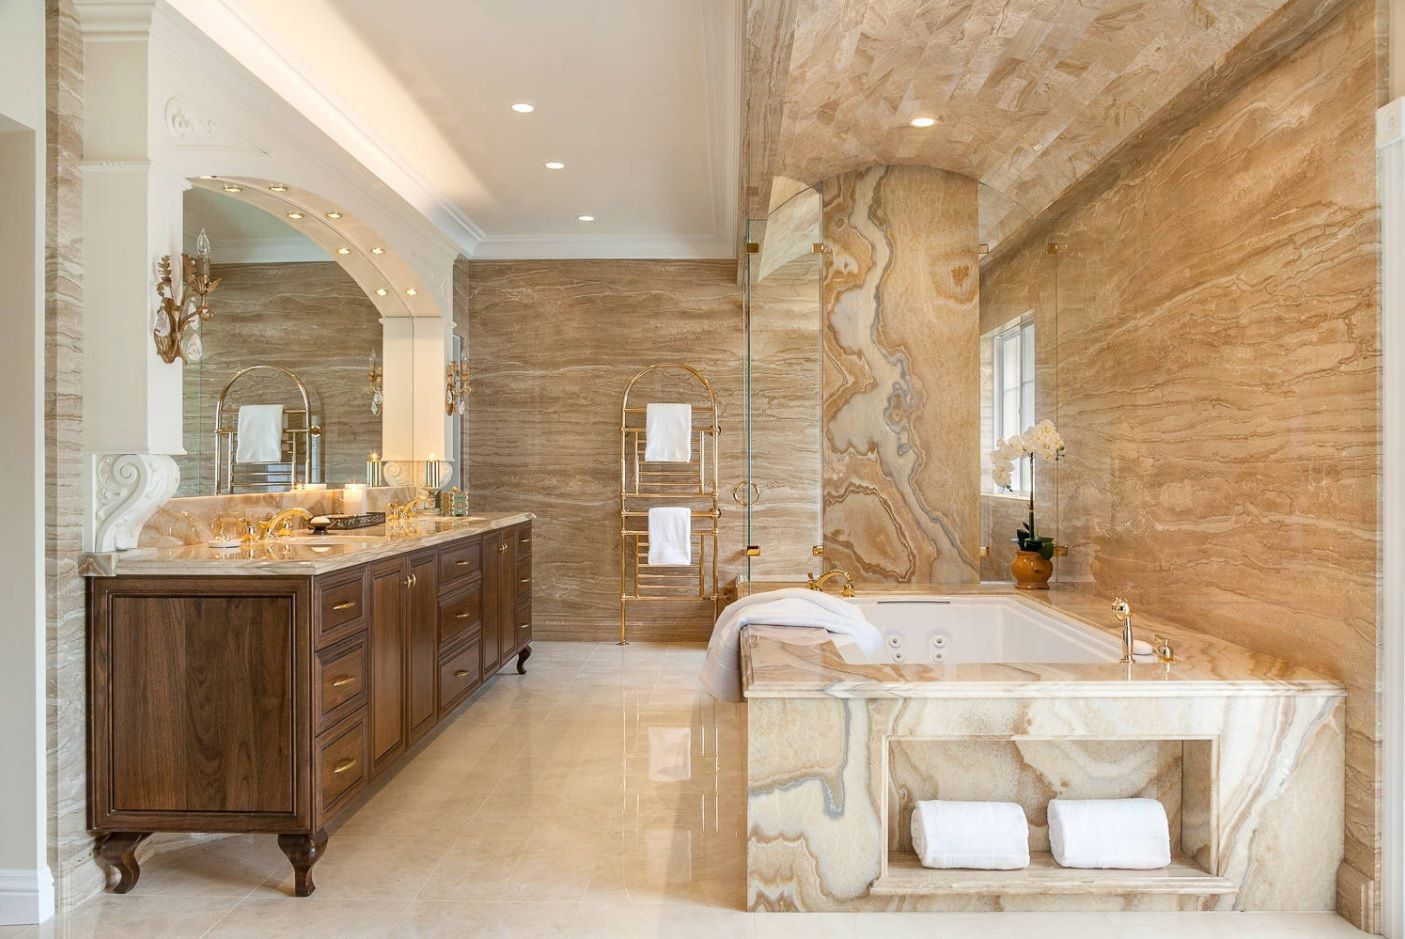 Master Bathroom Design Ideas with Real Interior Photos. Unique marble streaks pattern in the glossy decorated room